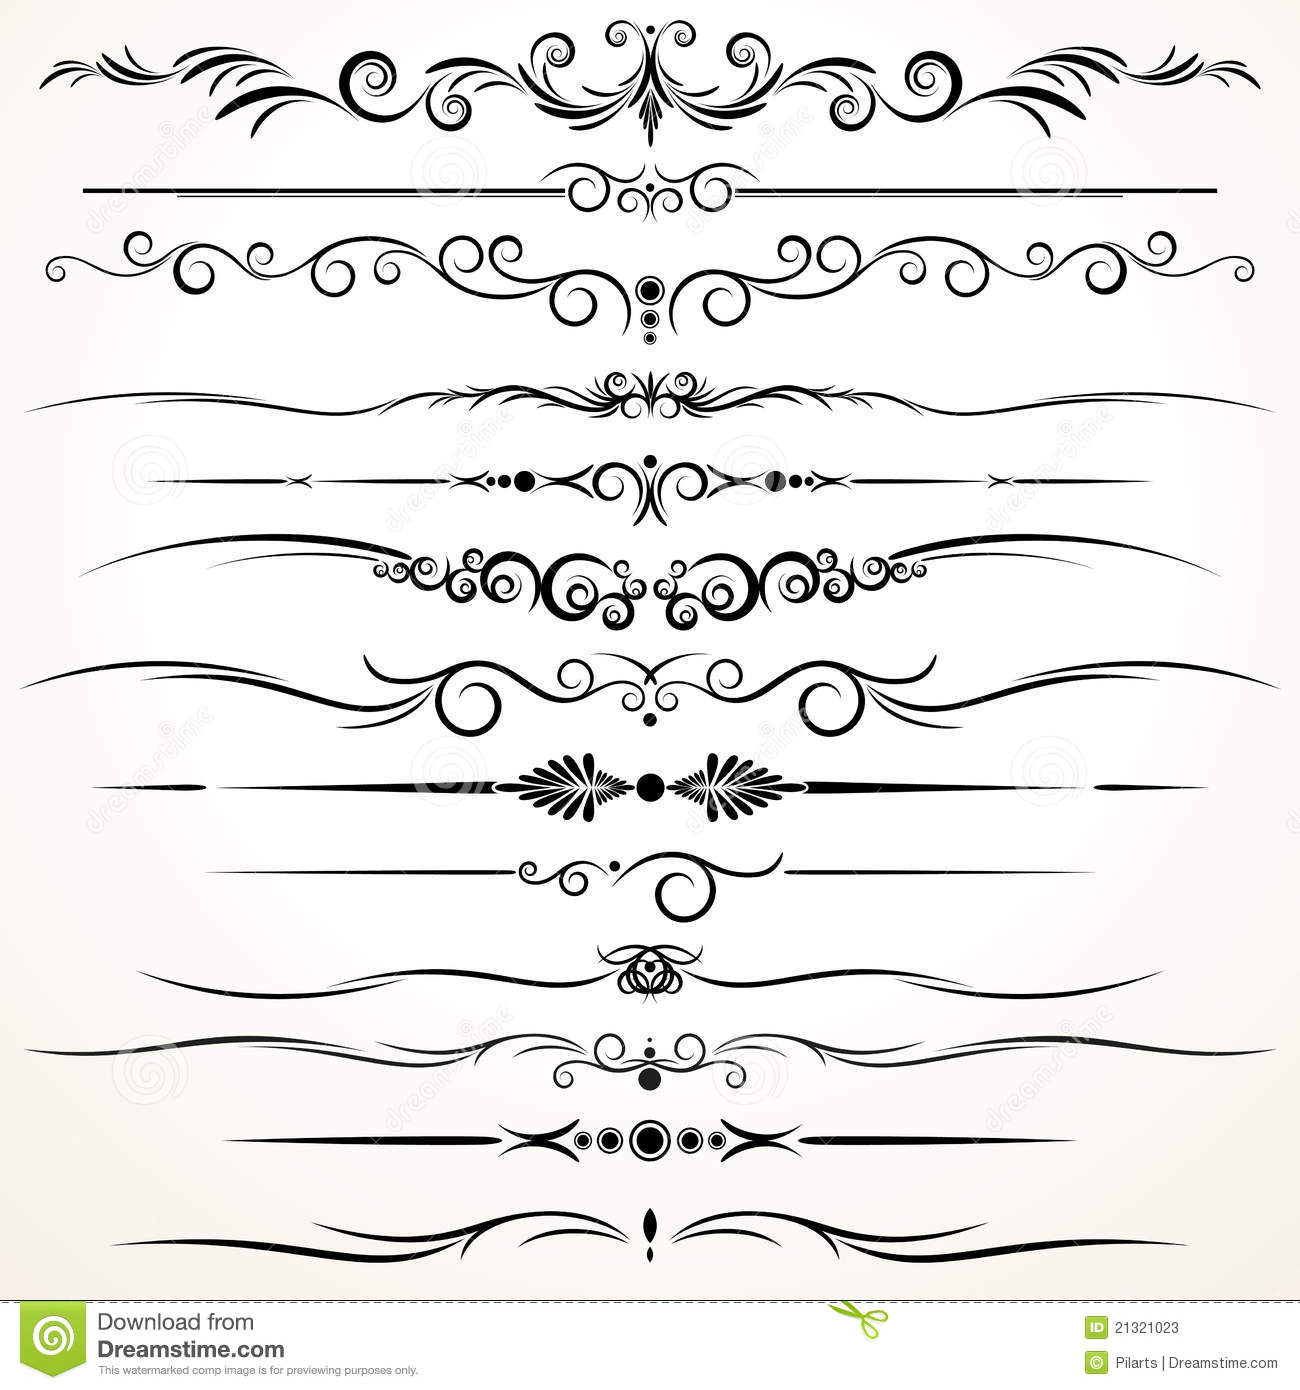 A Line Design : Ornamental rule lines in different design stock vector